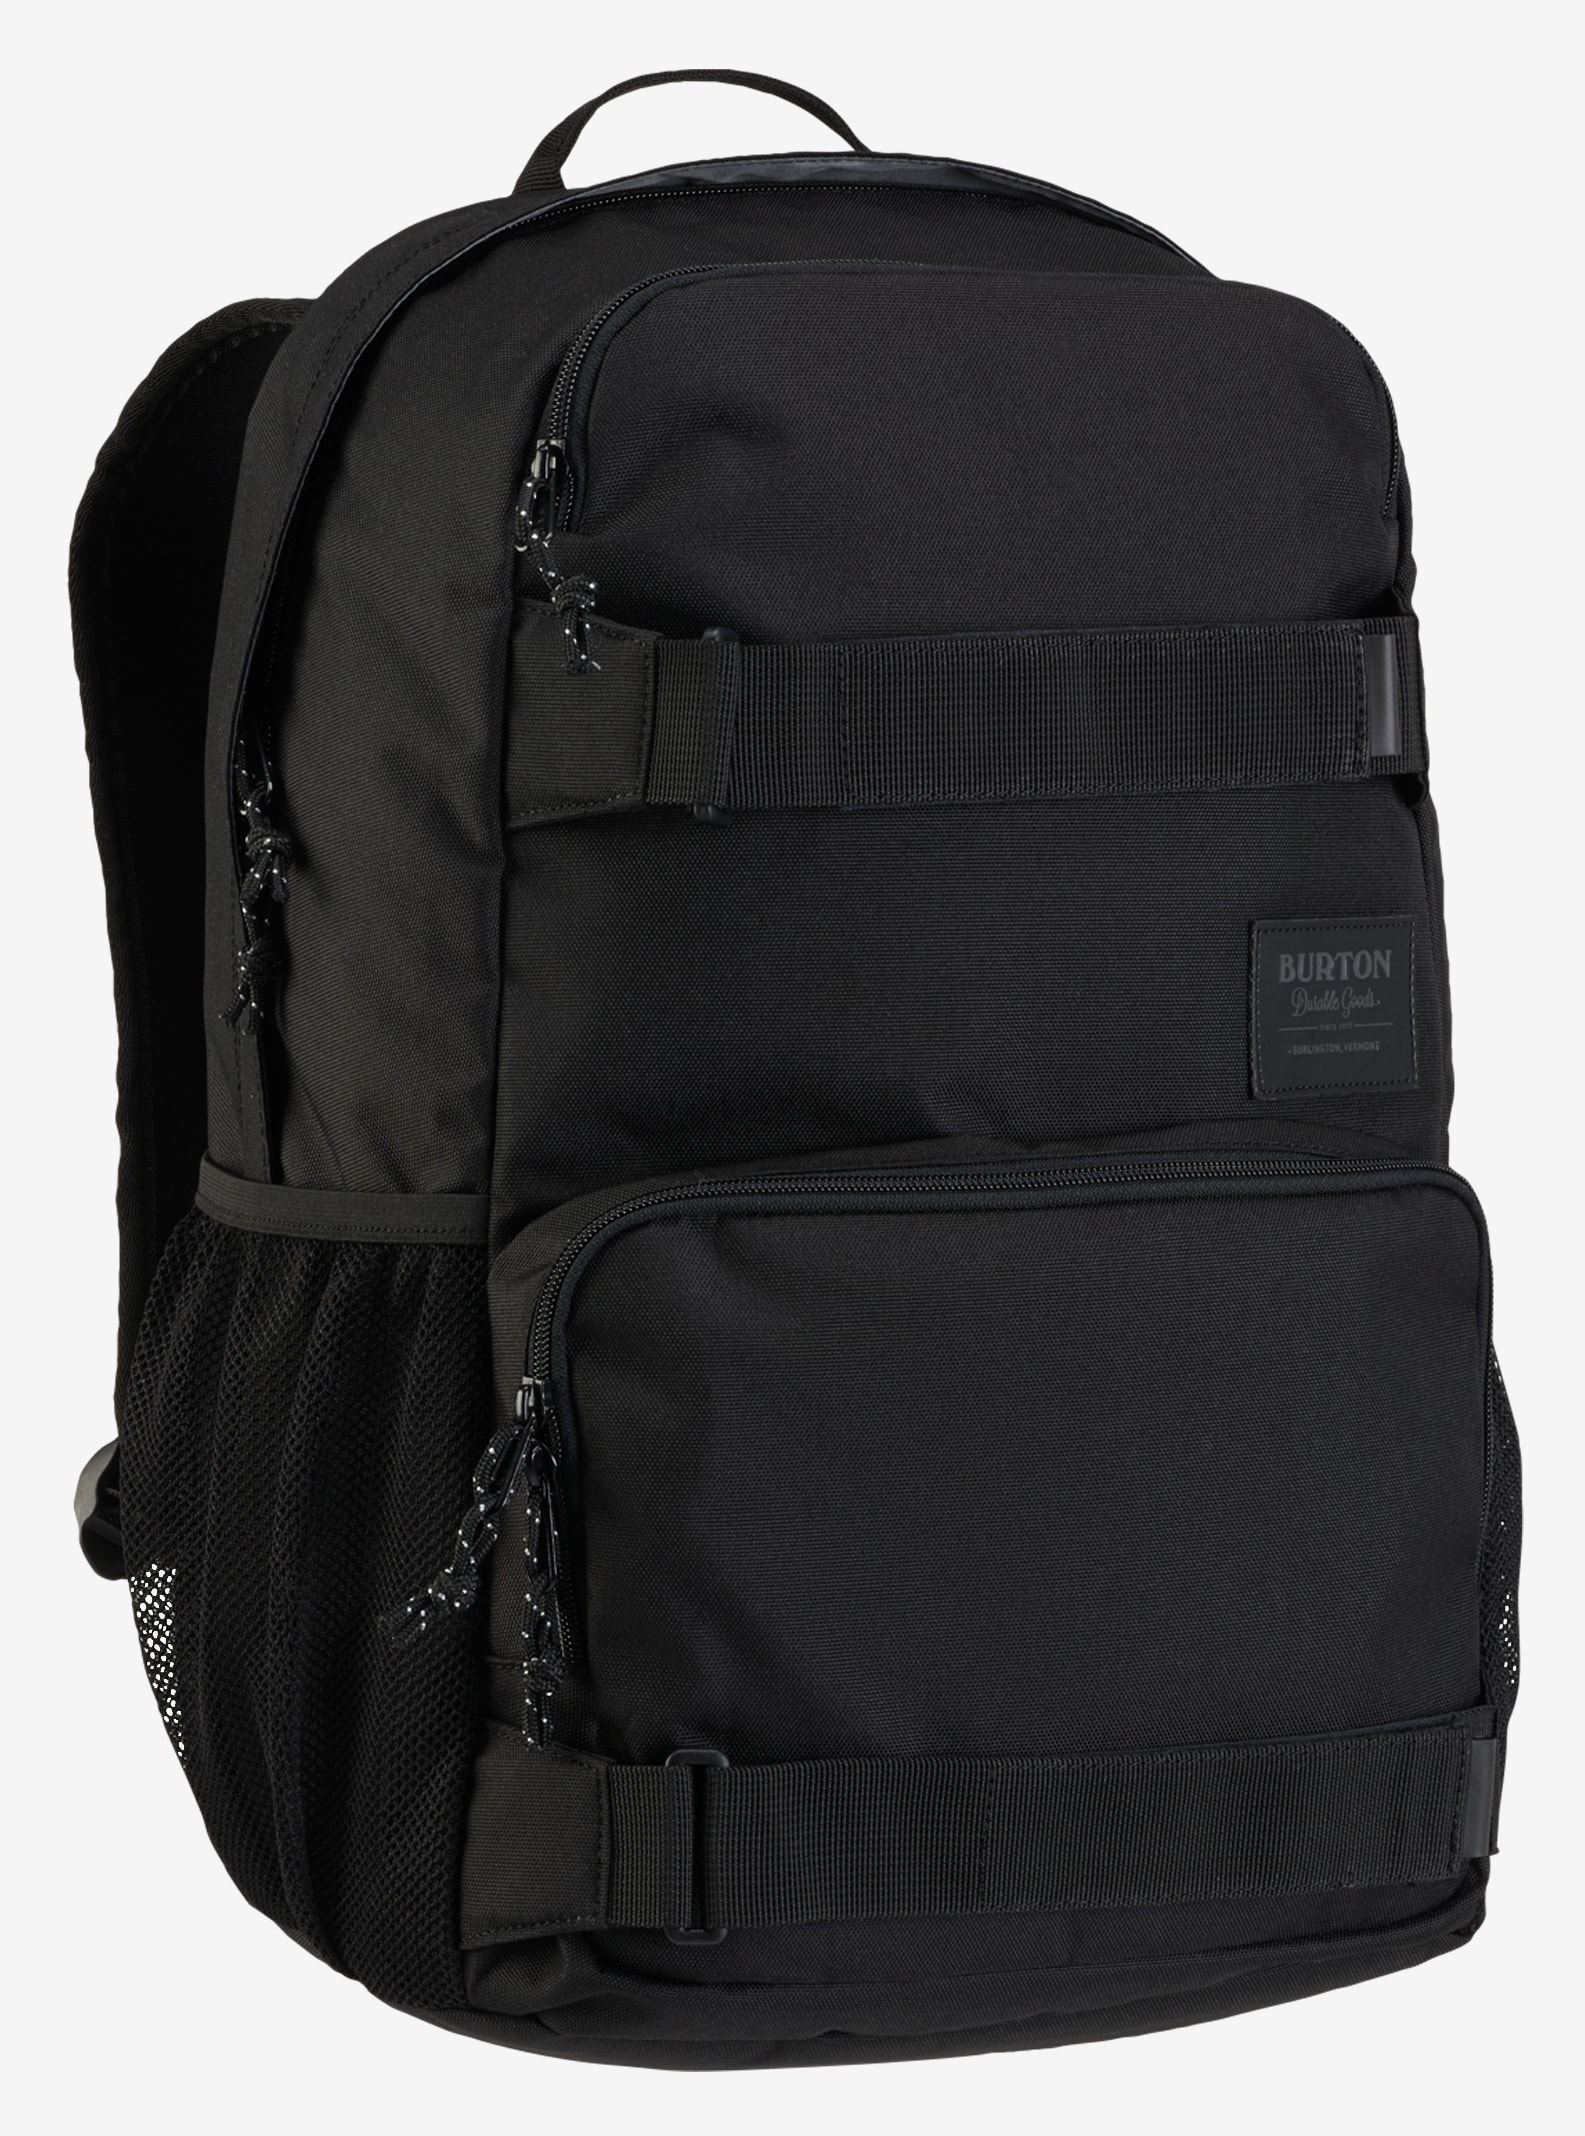 Burton - Sac à dos Treble Yell affichage en True Black